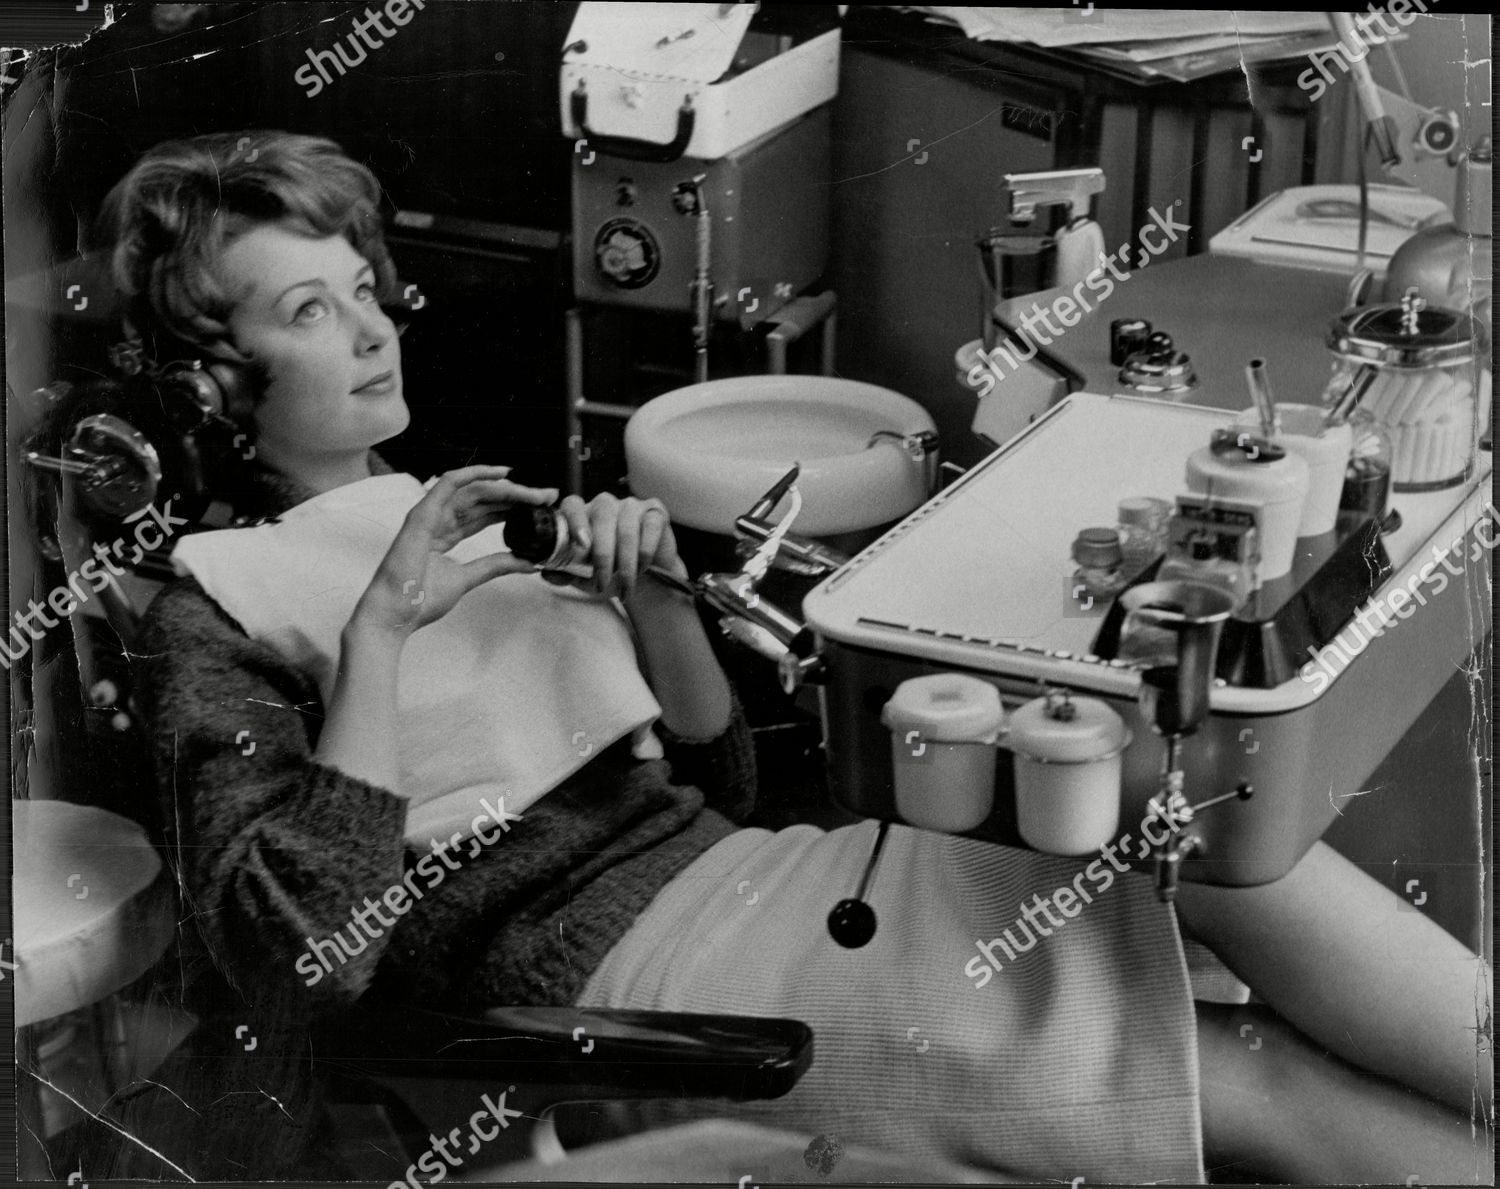 Stockfoto von Carol Bainbridge Model Listening To Music Through Headphones While In Dentist Chair To Distract Her From Operation 1960.